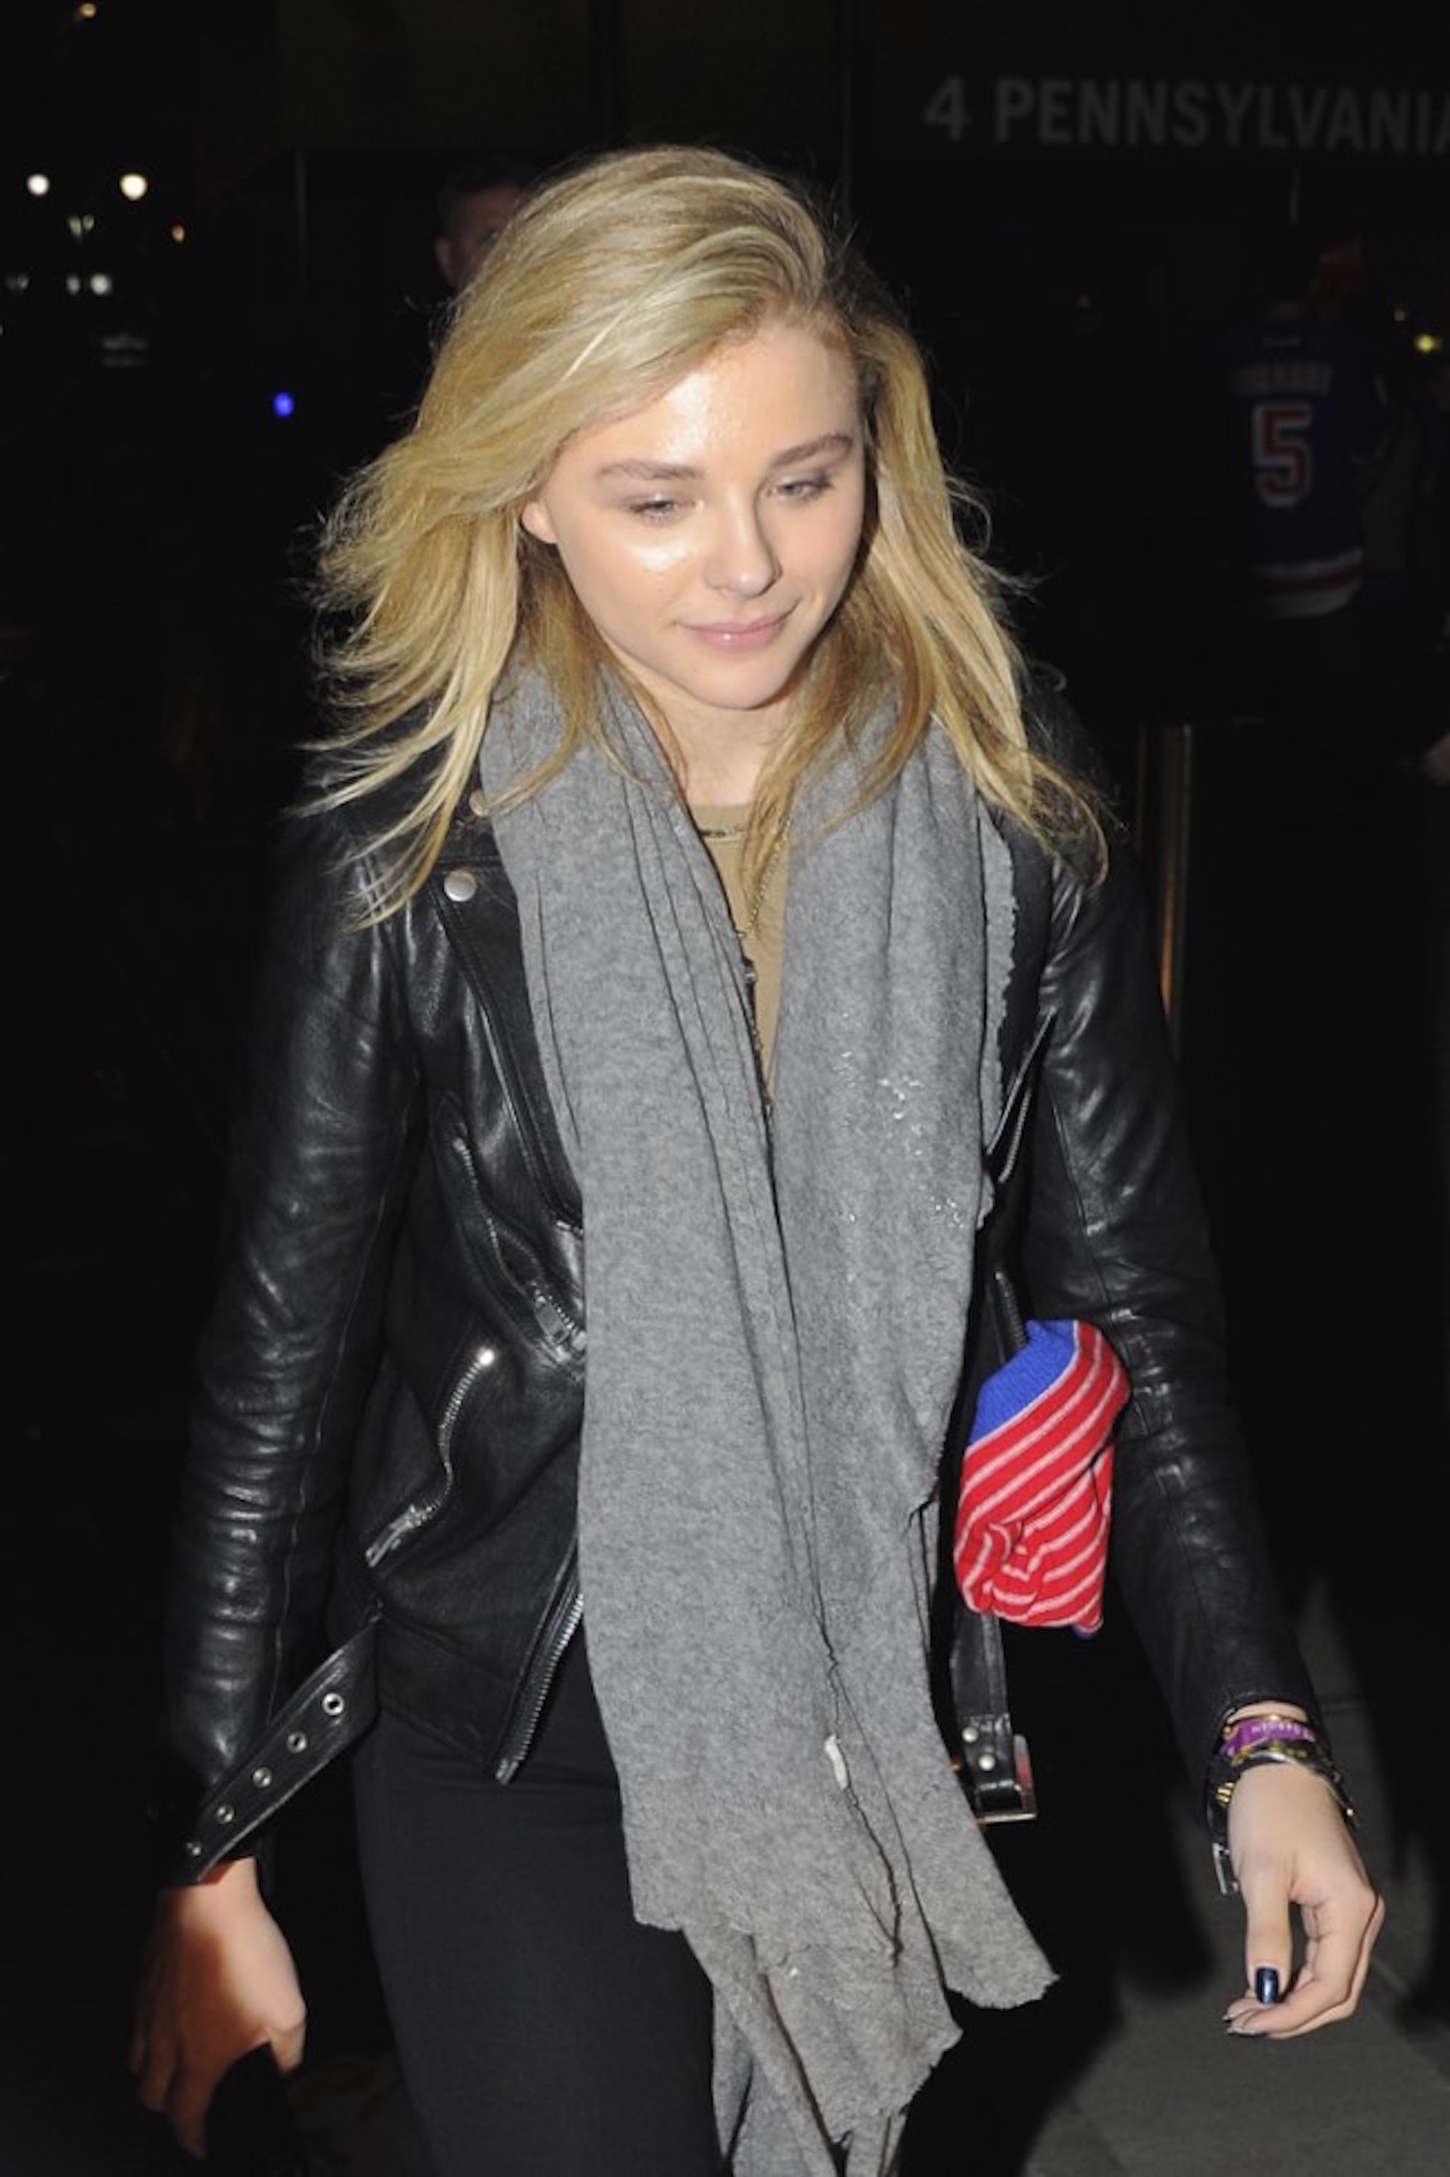 Chloe Moretz 2015 : Chloe Moretz an Tights at Madison Square Garden -09